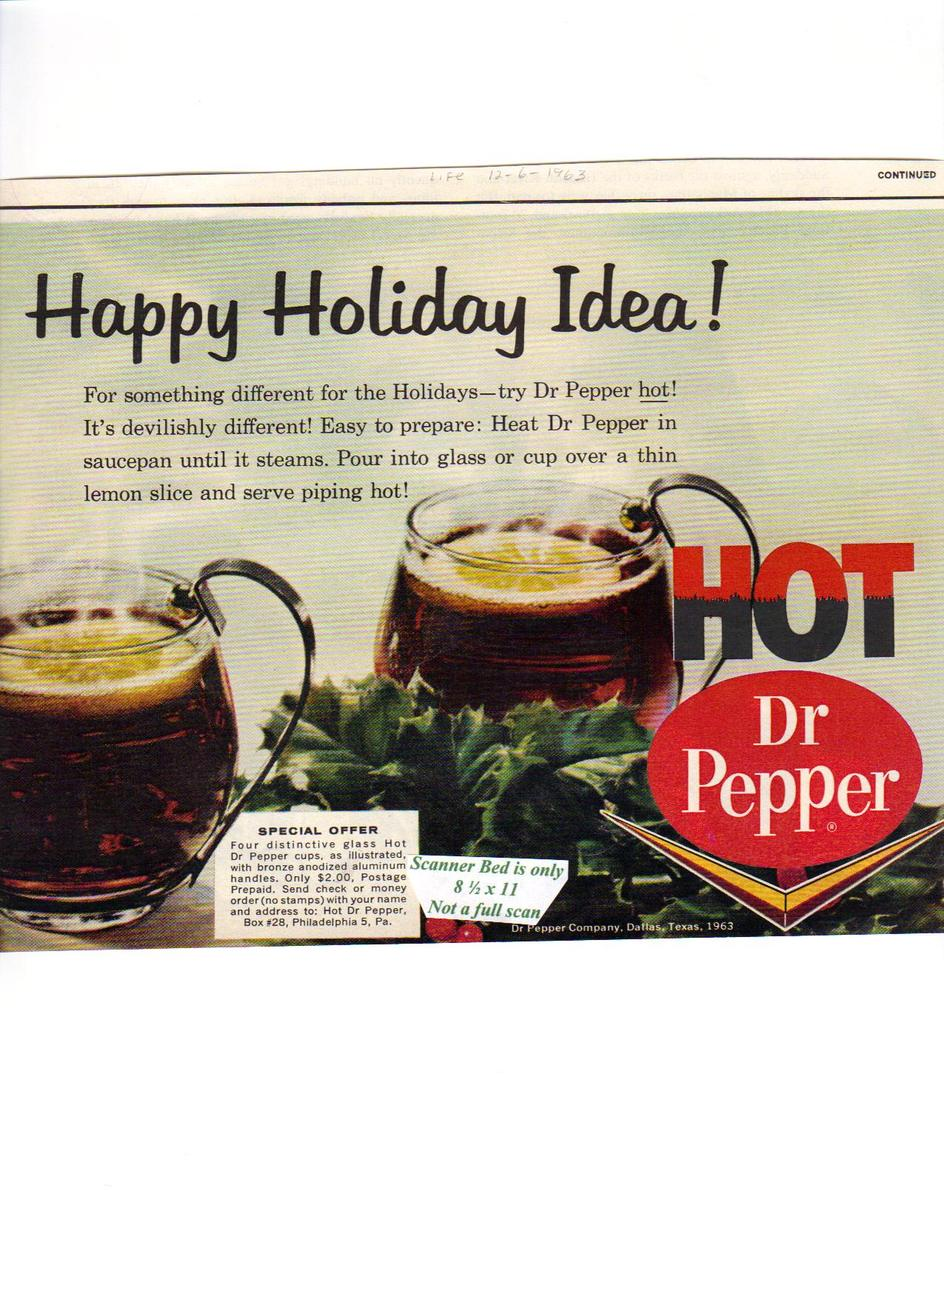 Hot Dr Pepper original 1963 magazine print ad.